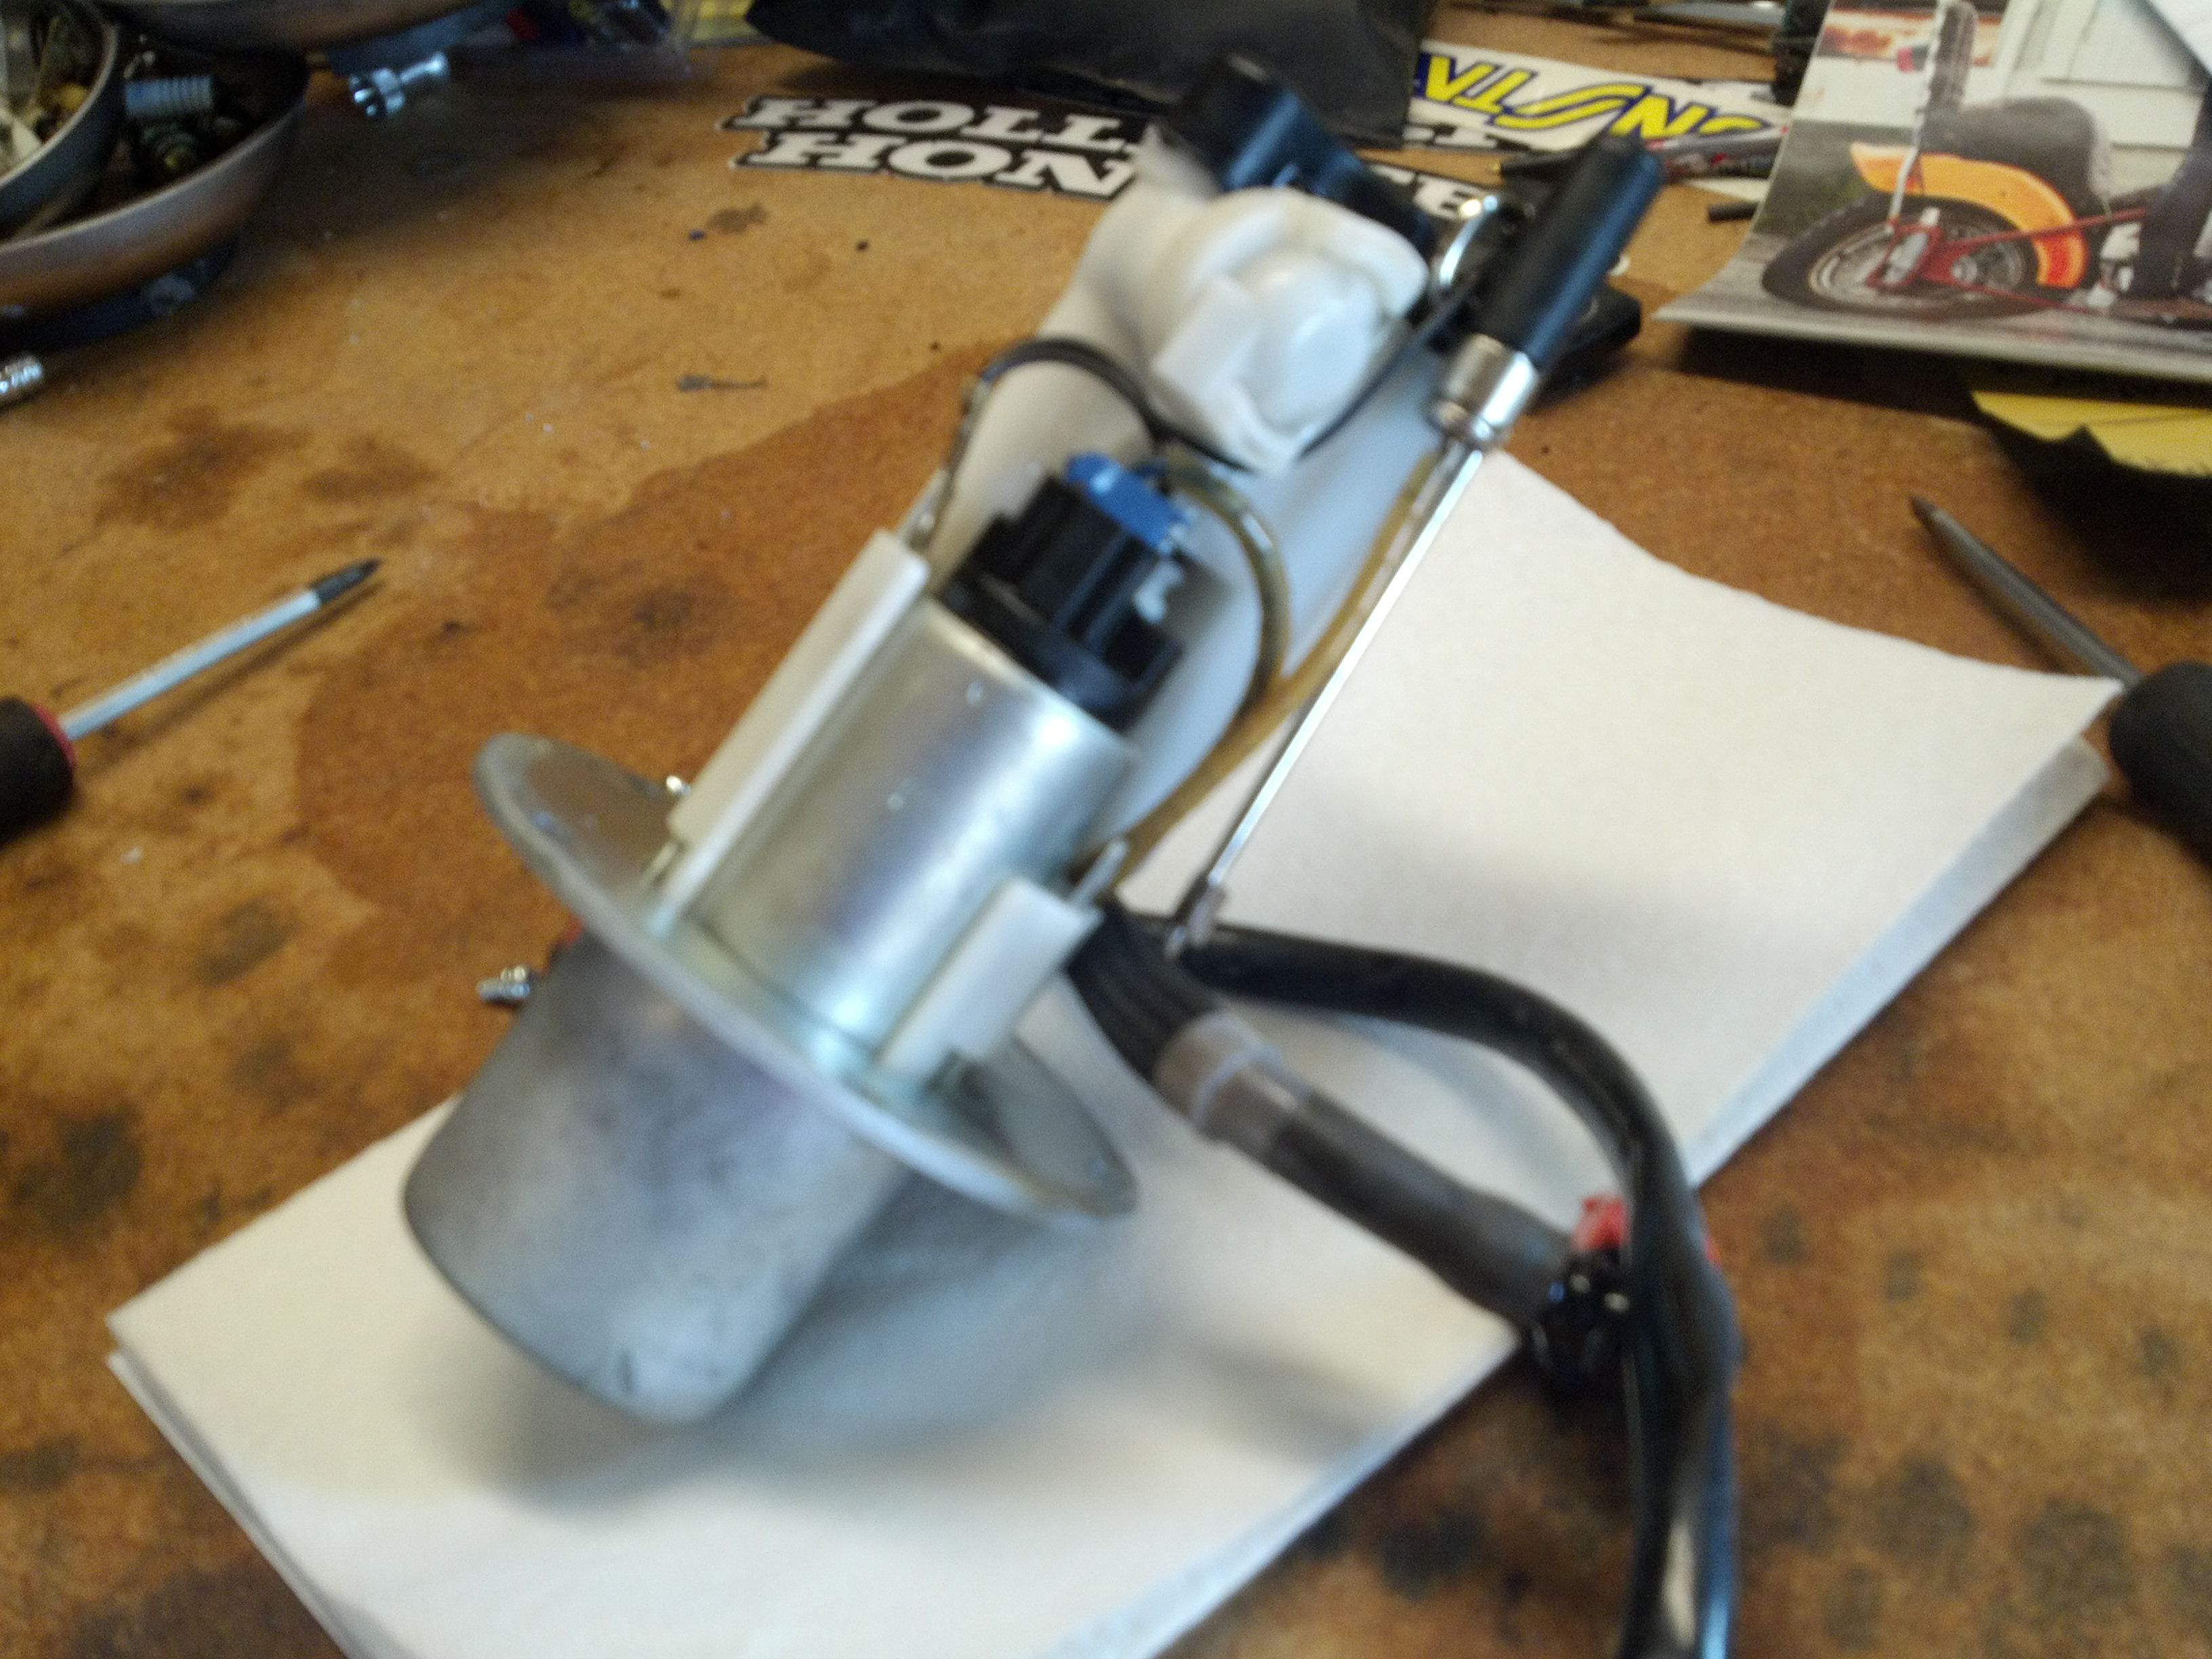 How To Service Fuel Pump And Strainer Zx6r Forum 2003 Chevy Silverado Filter Location Resizedimage 1331441046475